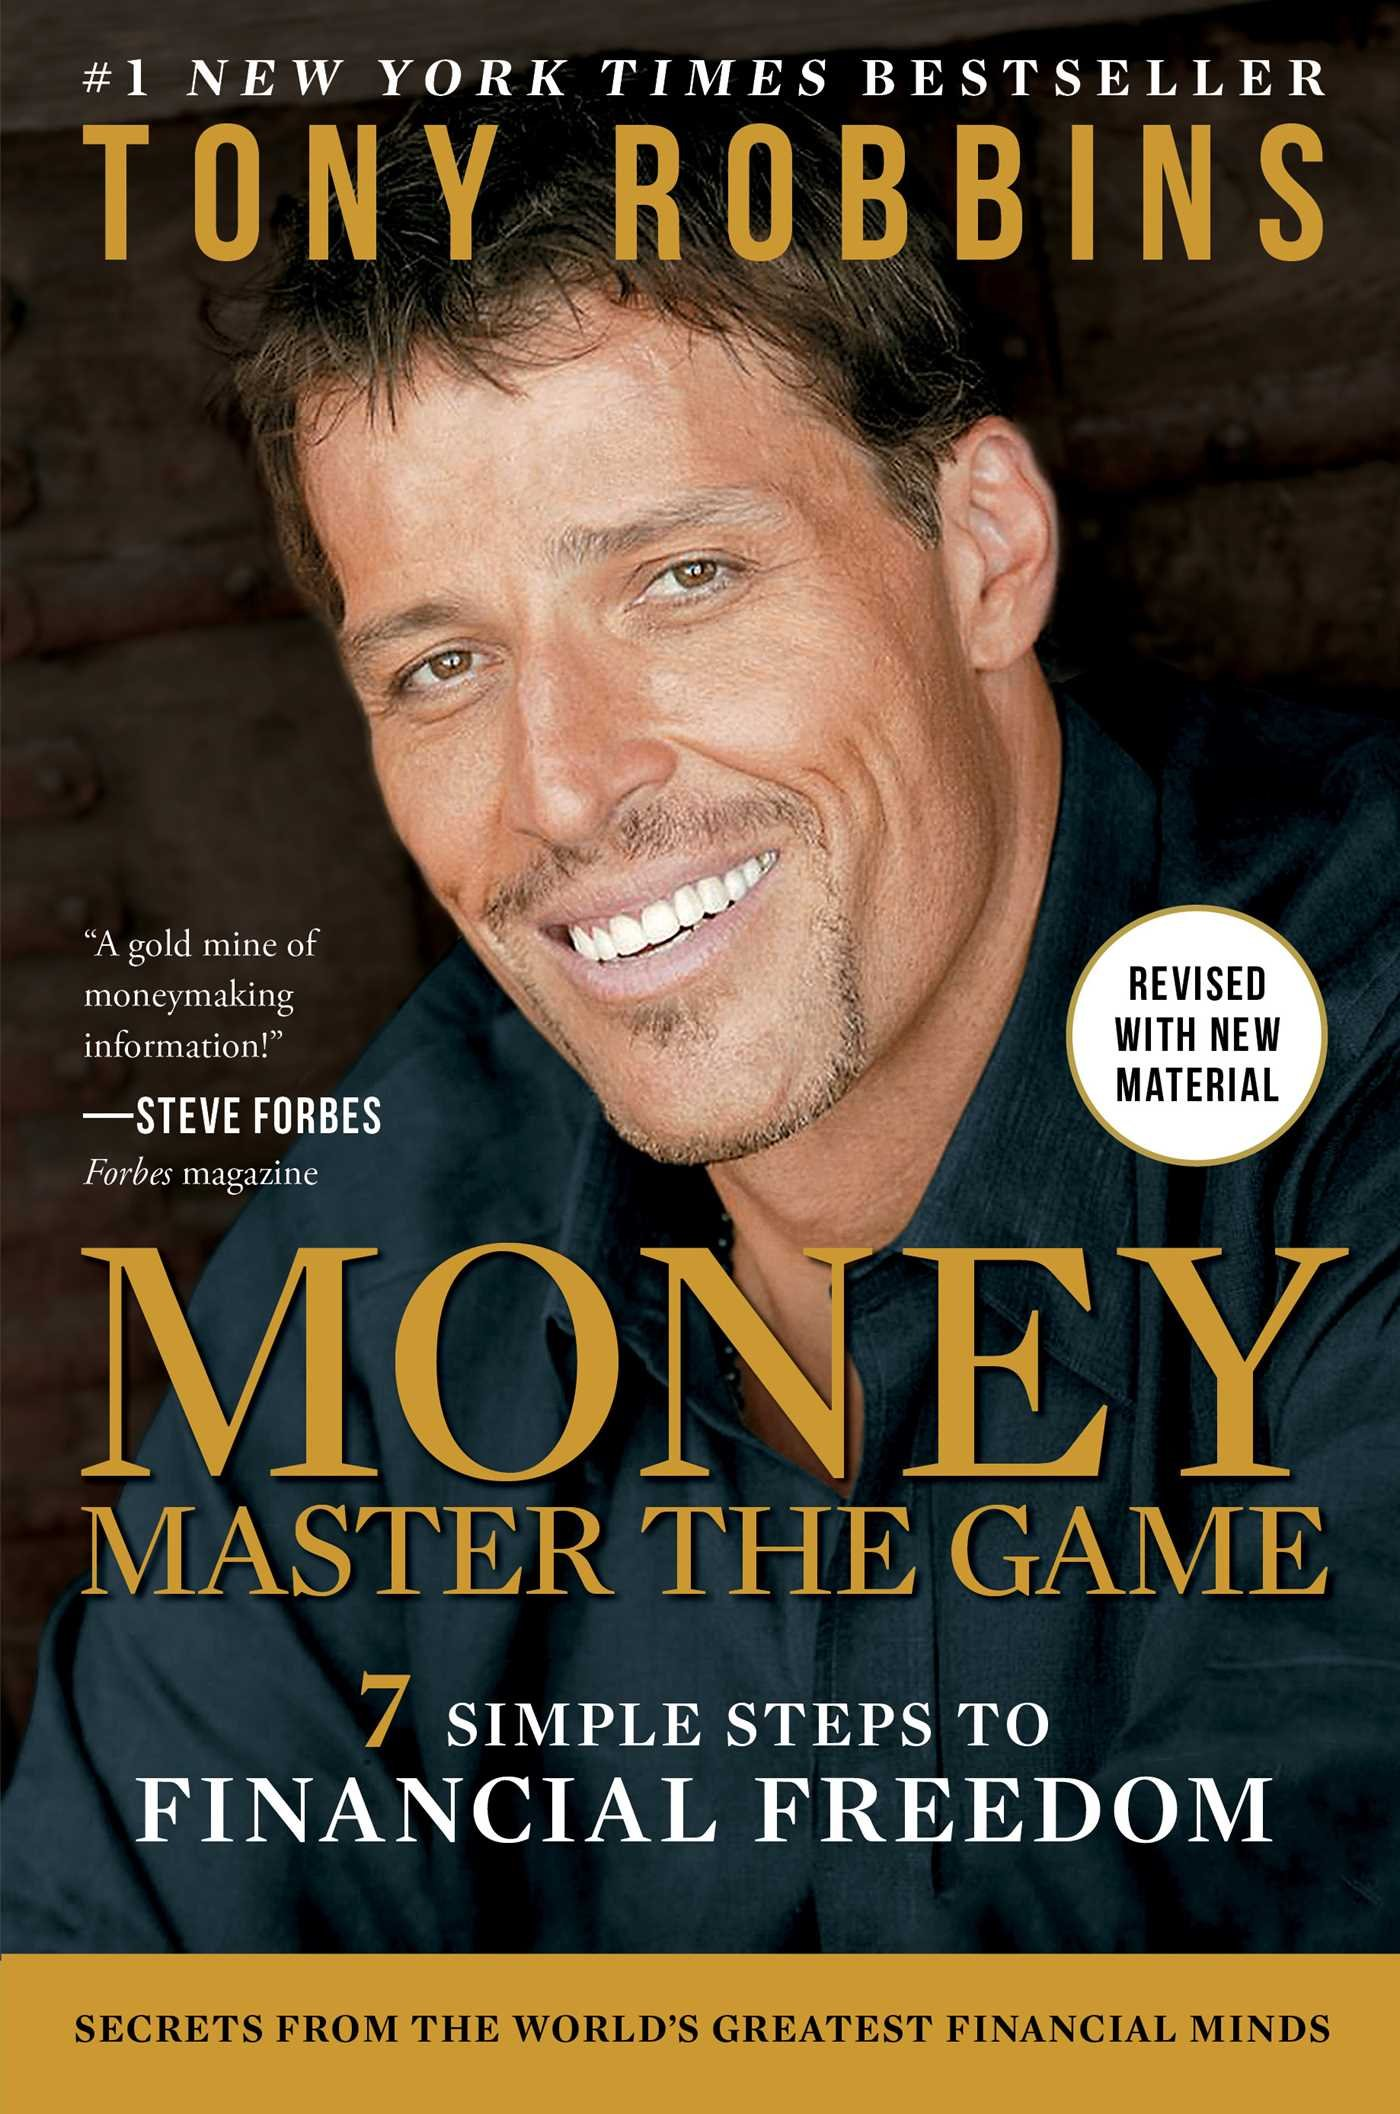 Image result for tony robbins money master the game